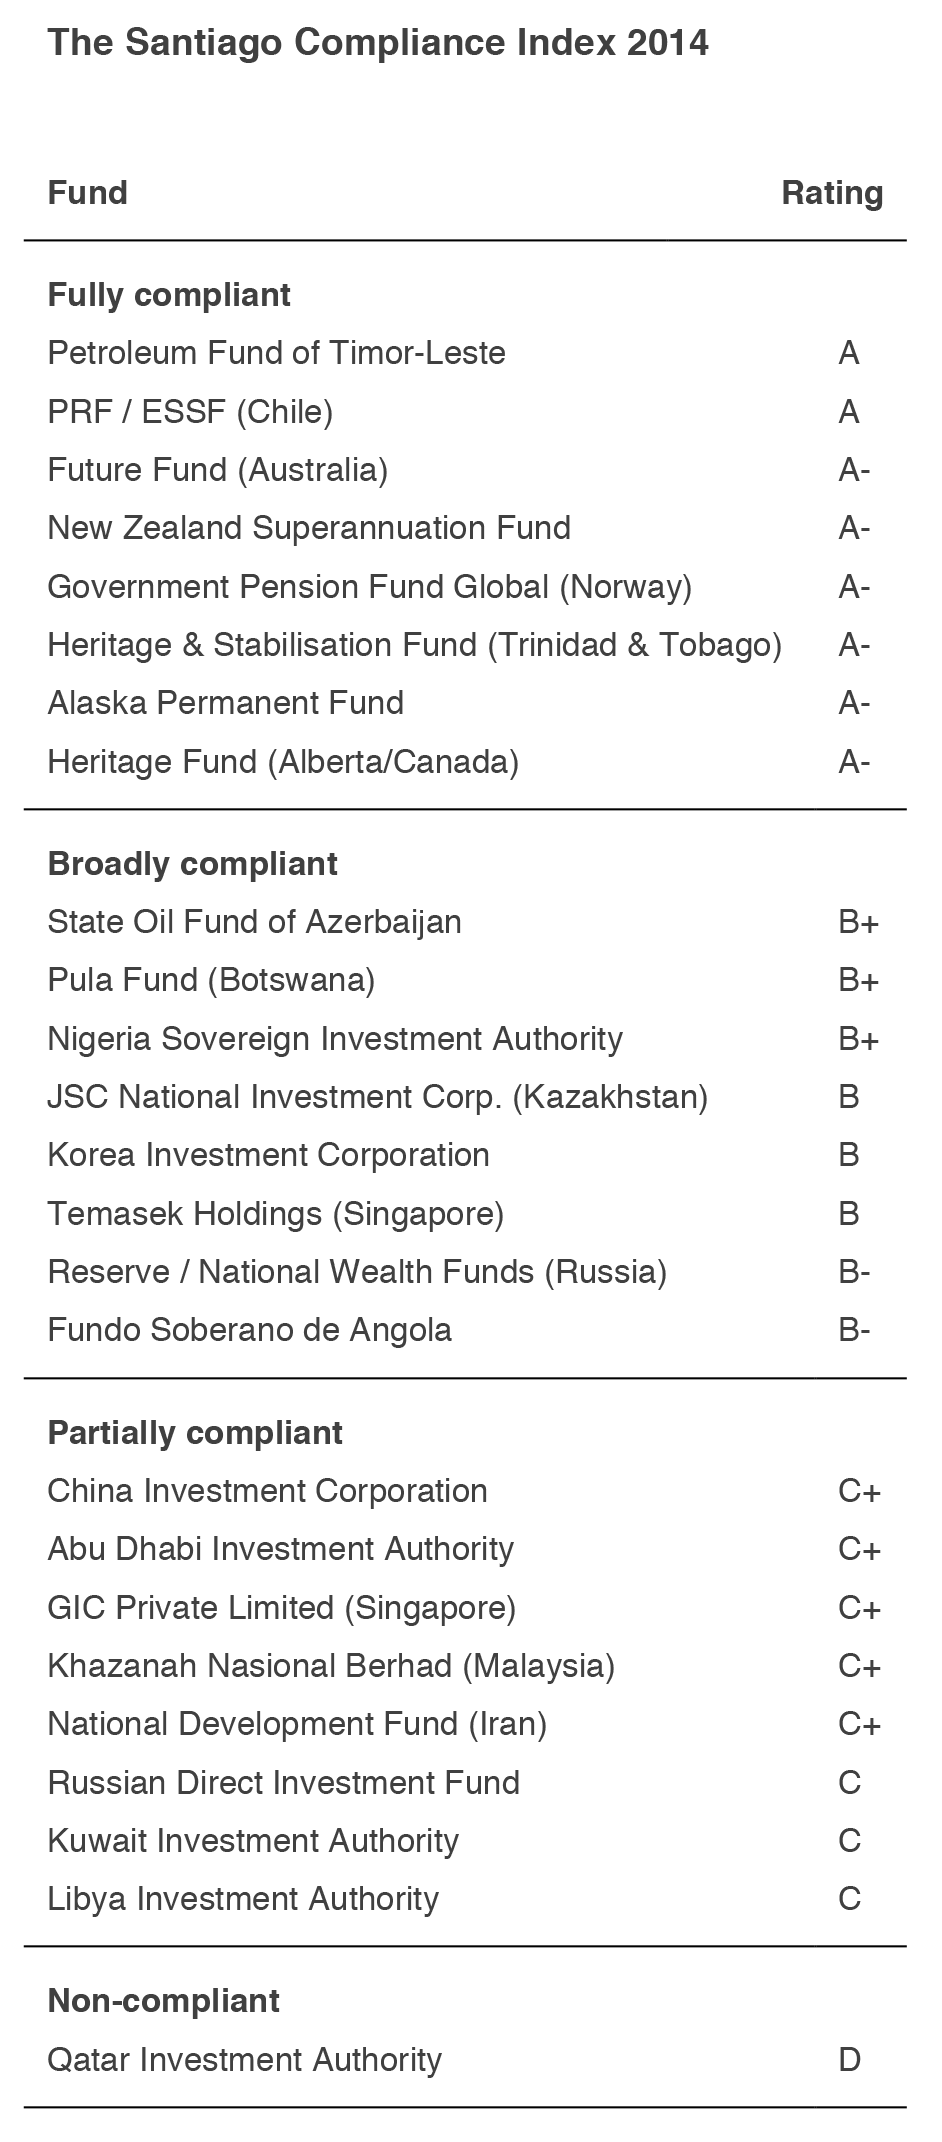 QIA is the only fund with a non-compliant D Grade